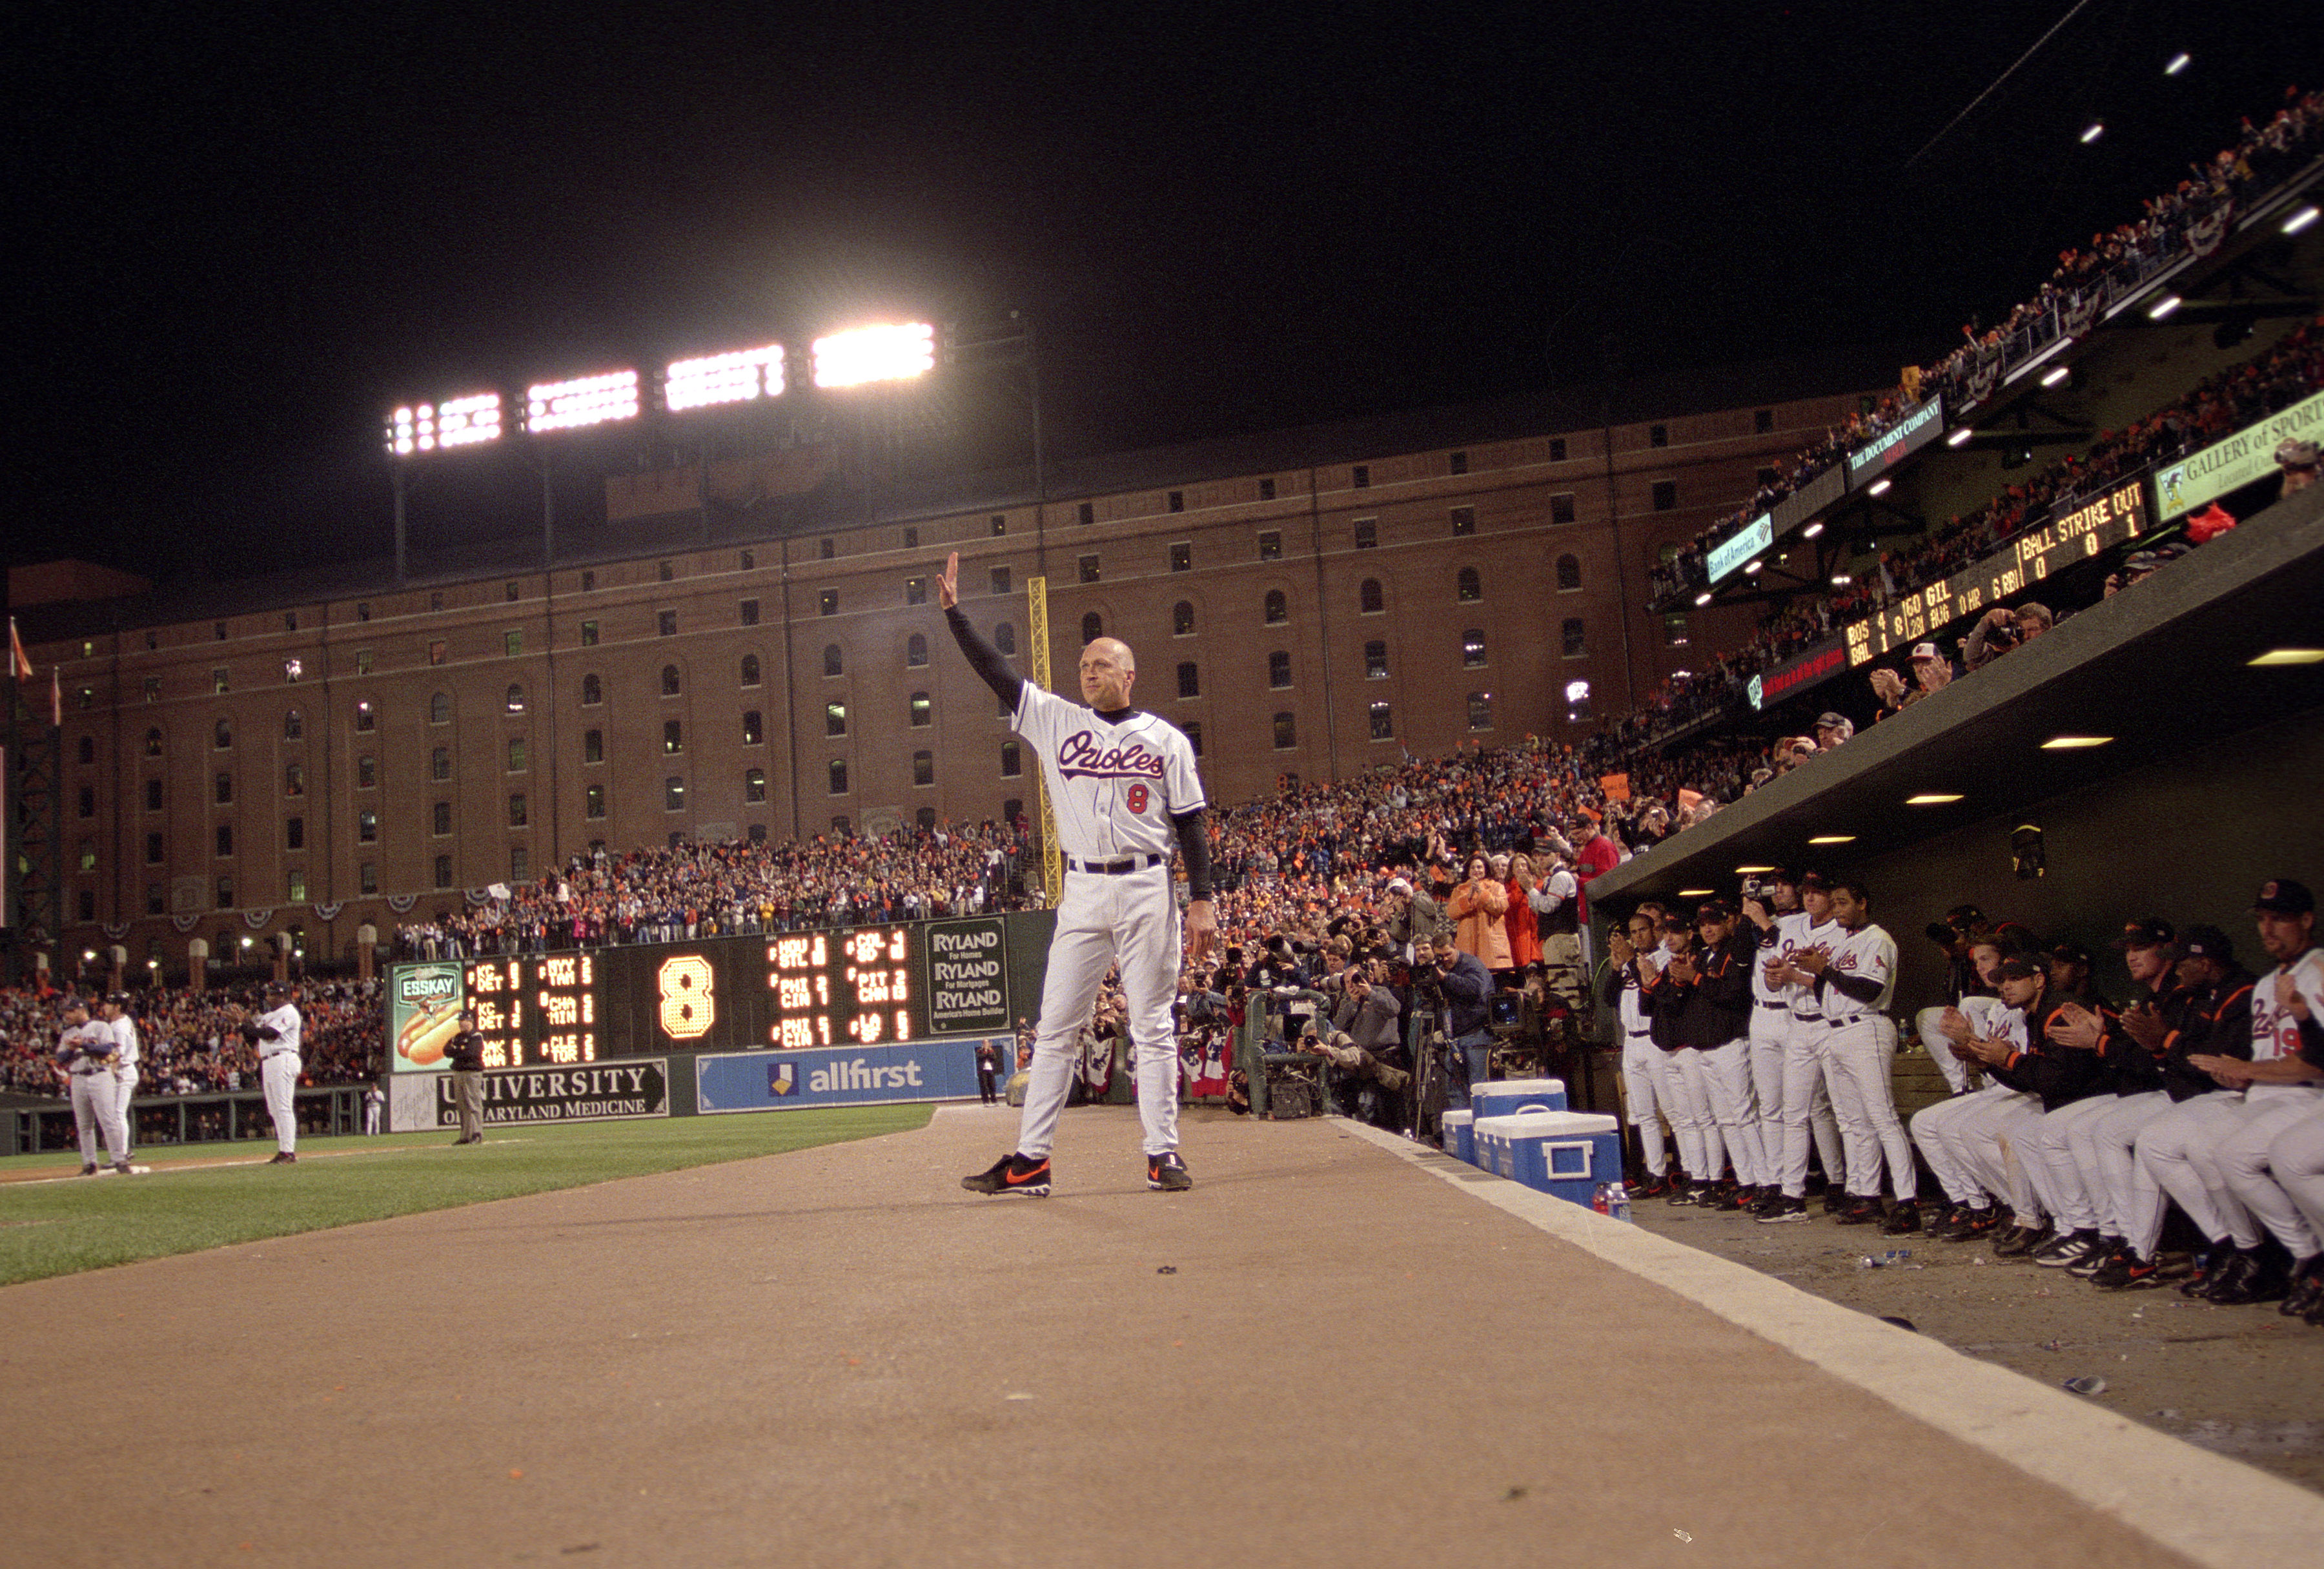 Baseball Hall of Famer Cal Ripken Jr. waves to the crowd as he leaves the final game of his career.